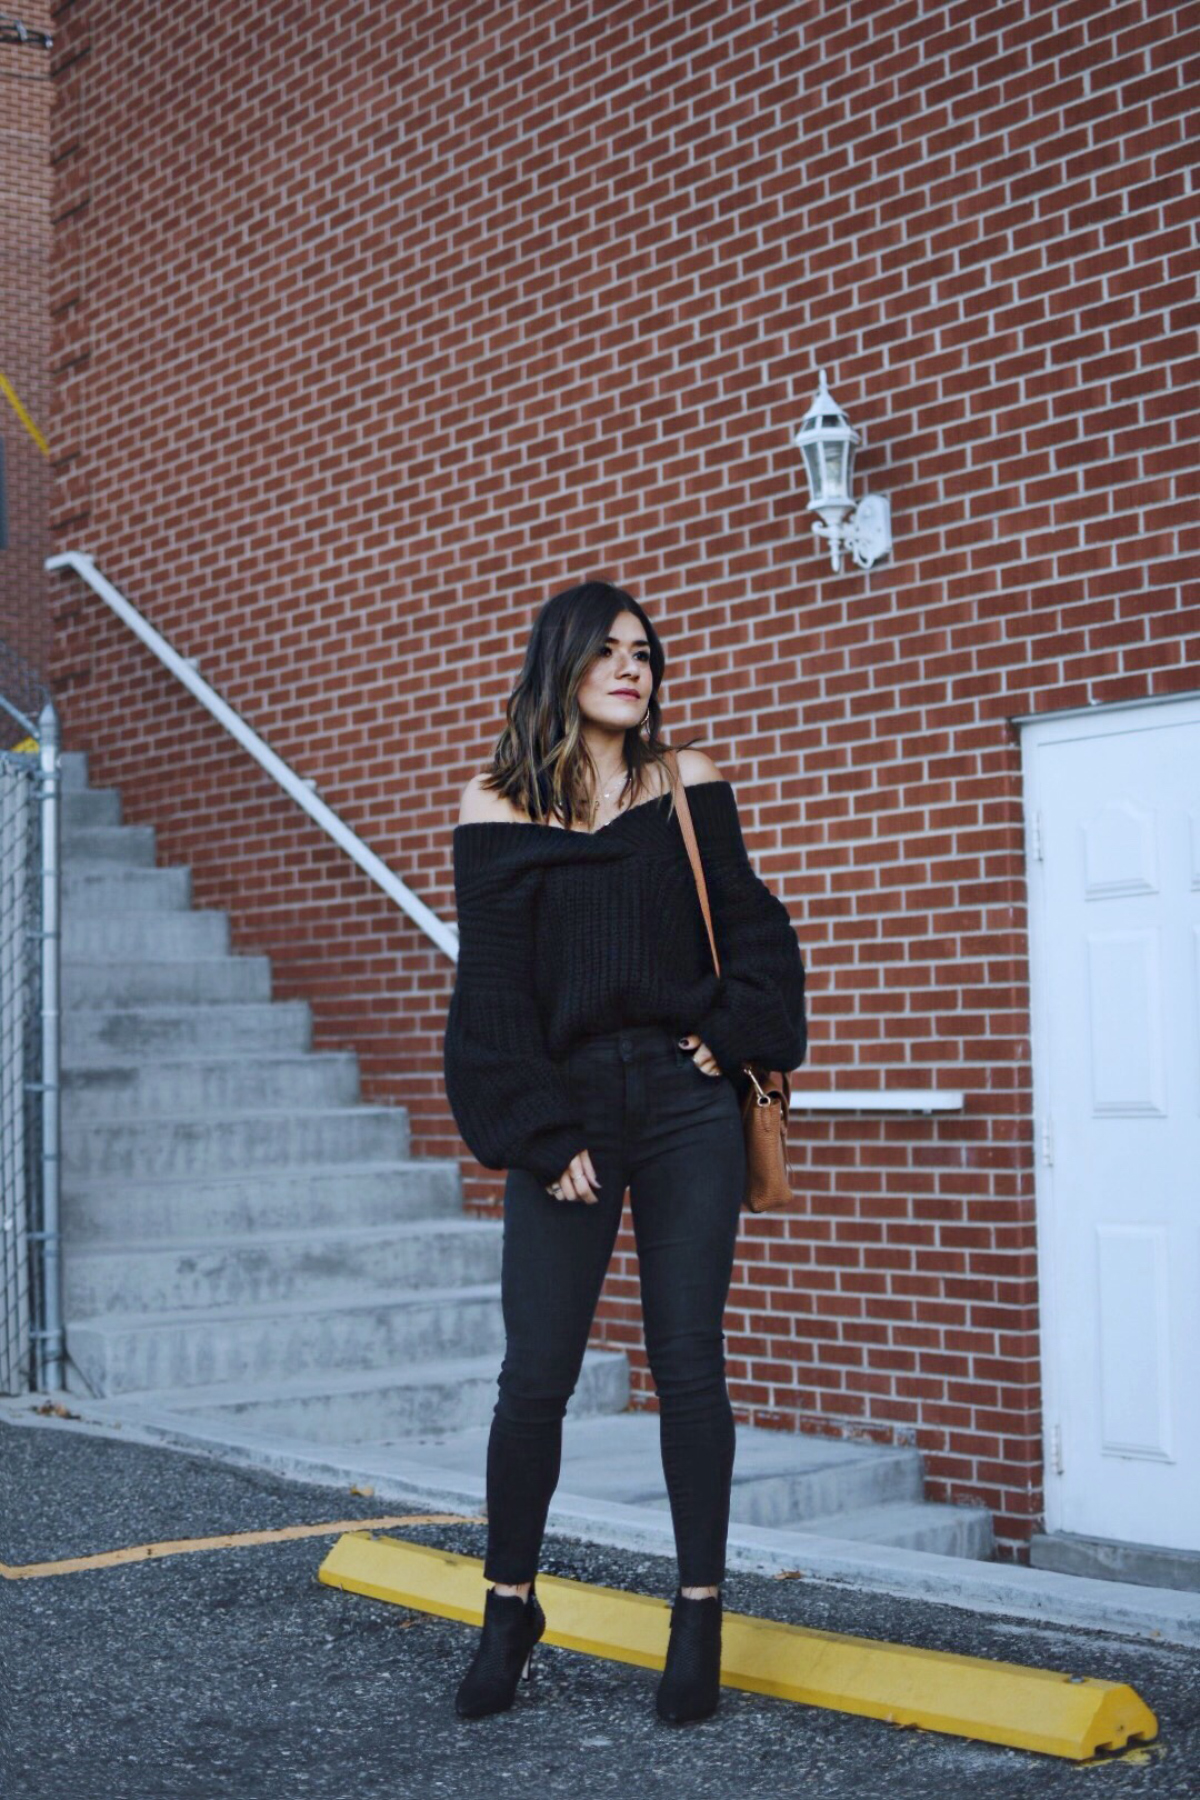 Carolina Hellal of Chic Talk wearing a shein knit sweater, topshop jeans, 3.1 phillip lim bag, johnston & Murphy boots and marc jacobs watch